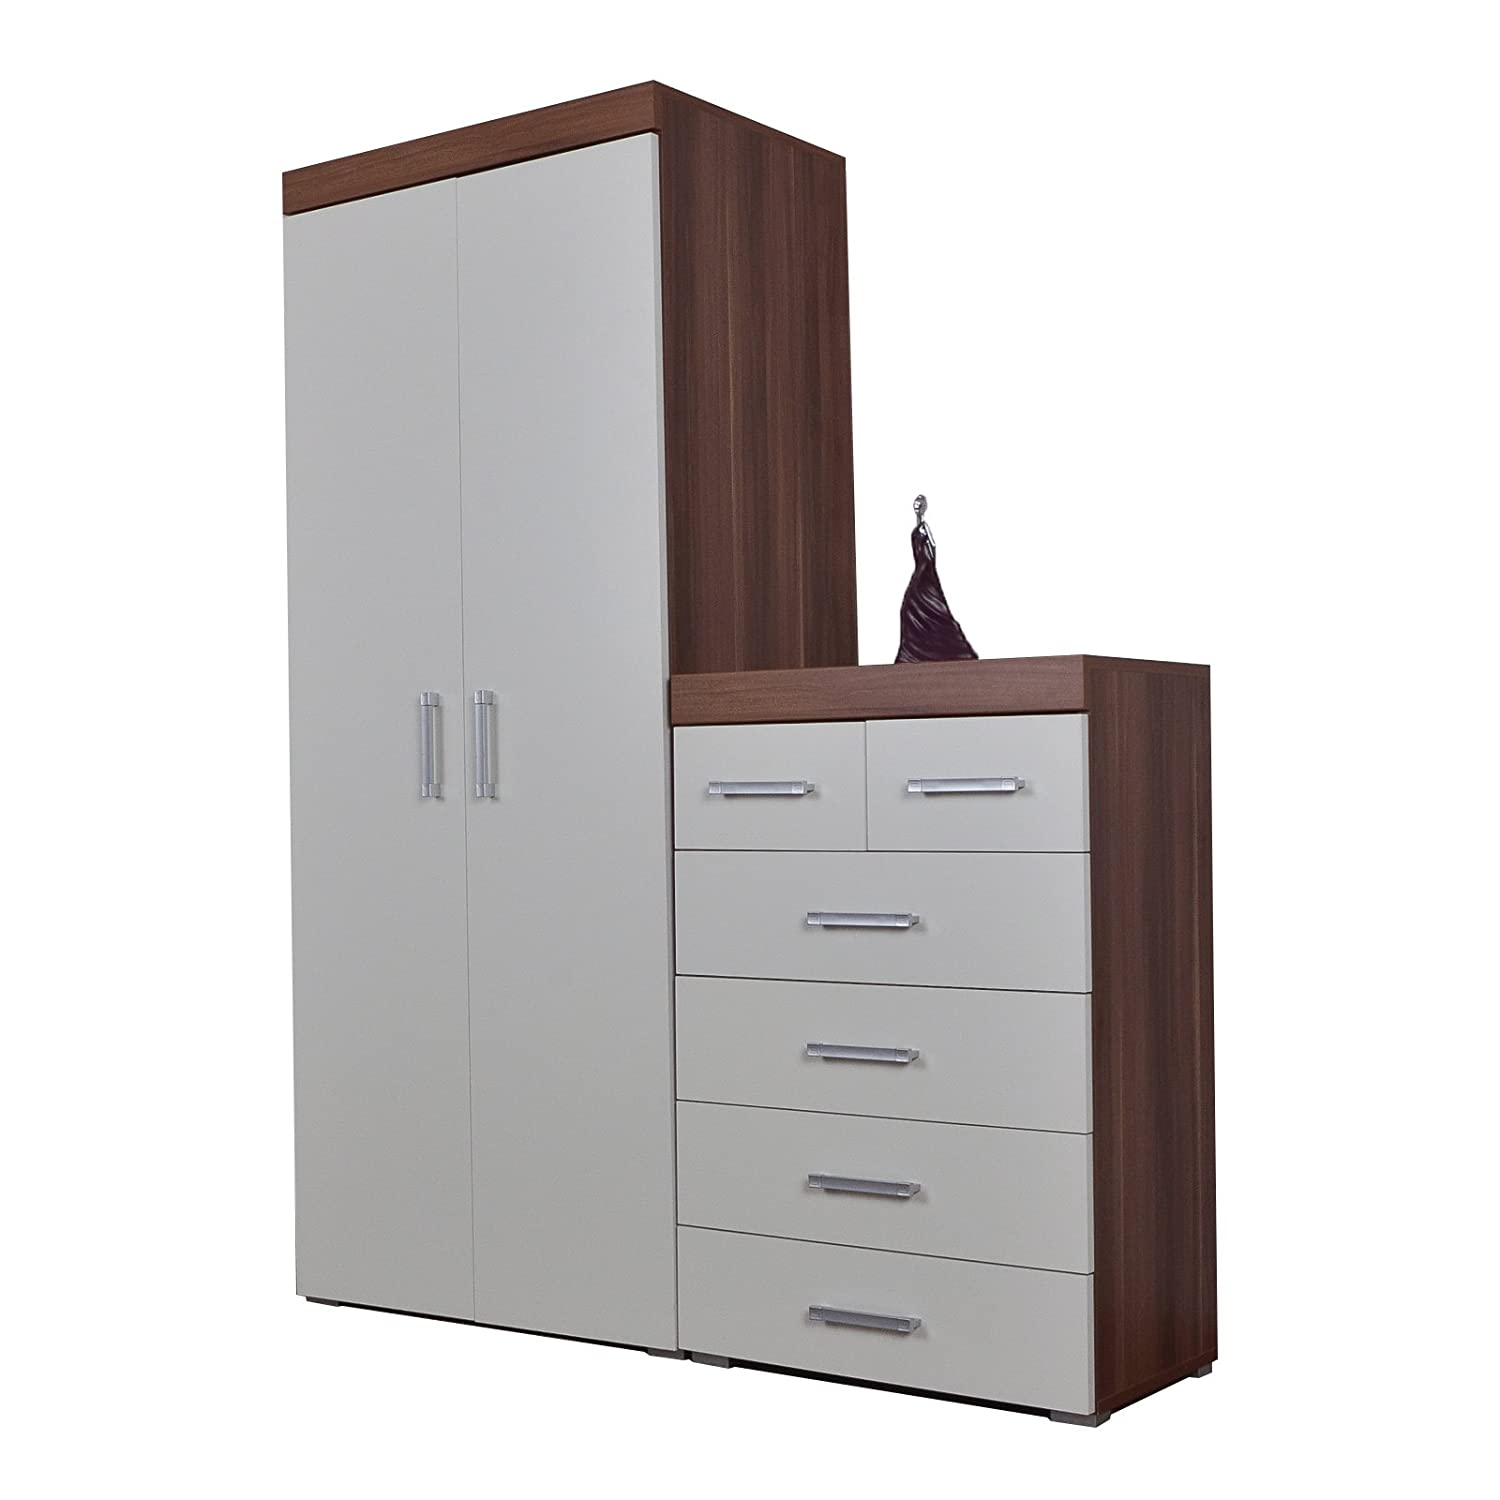 DP 2 Door Wardrobe & 4+2 Chest Drawers in White & Walnut Bedroom Furniture 6 Set